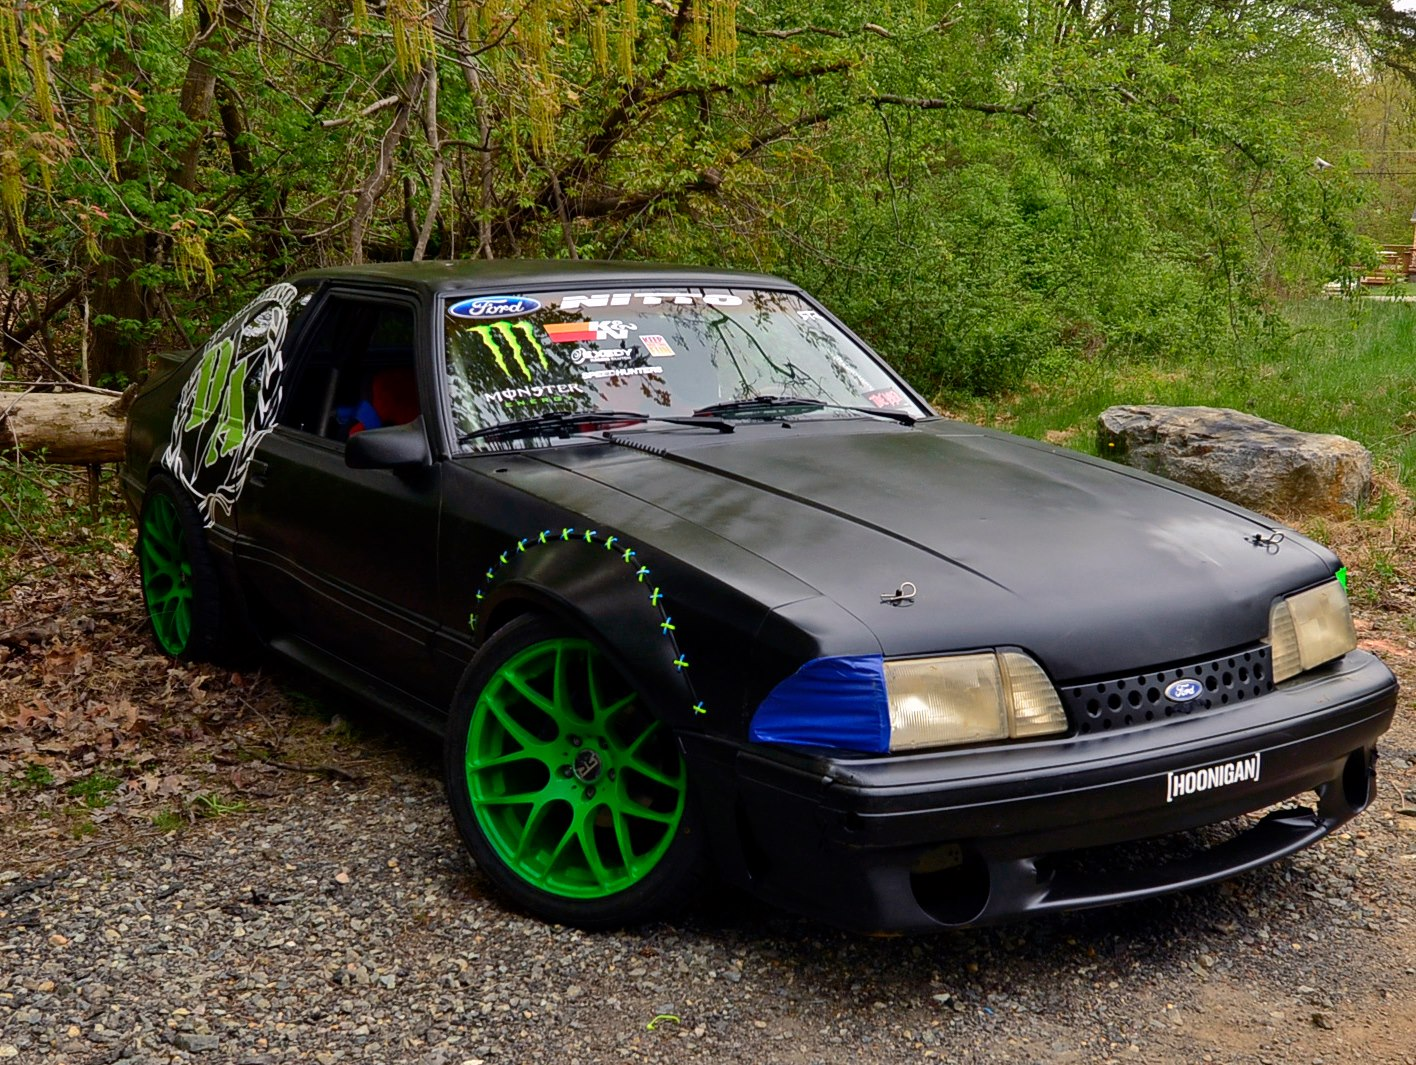 Ford Mustang The Best Drift Car Throtl Media And Content